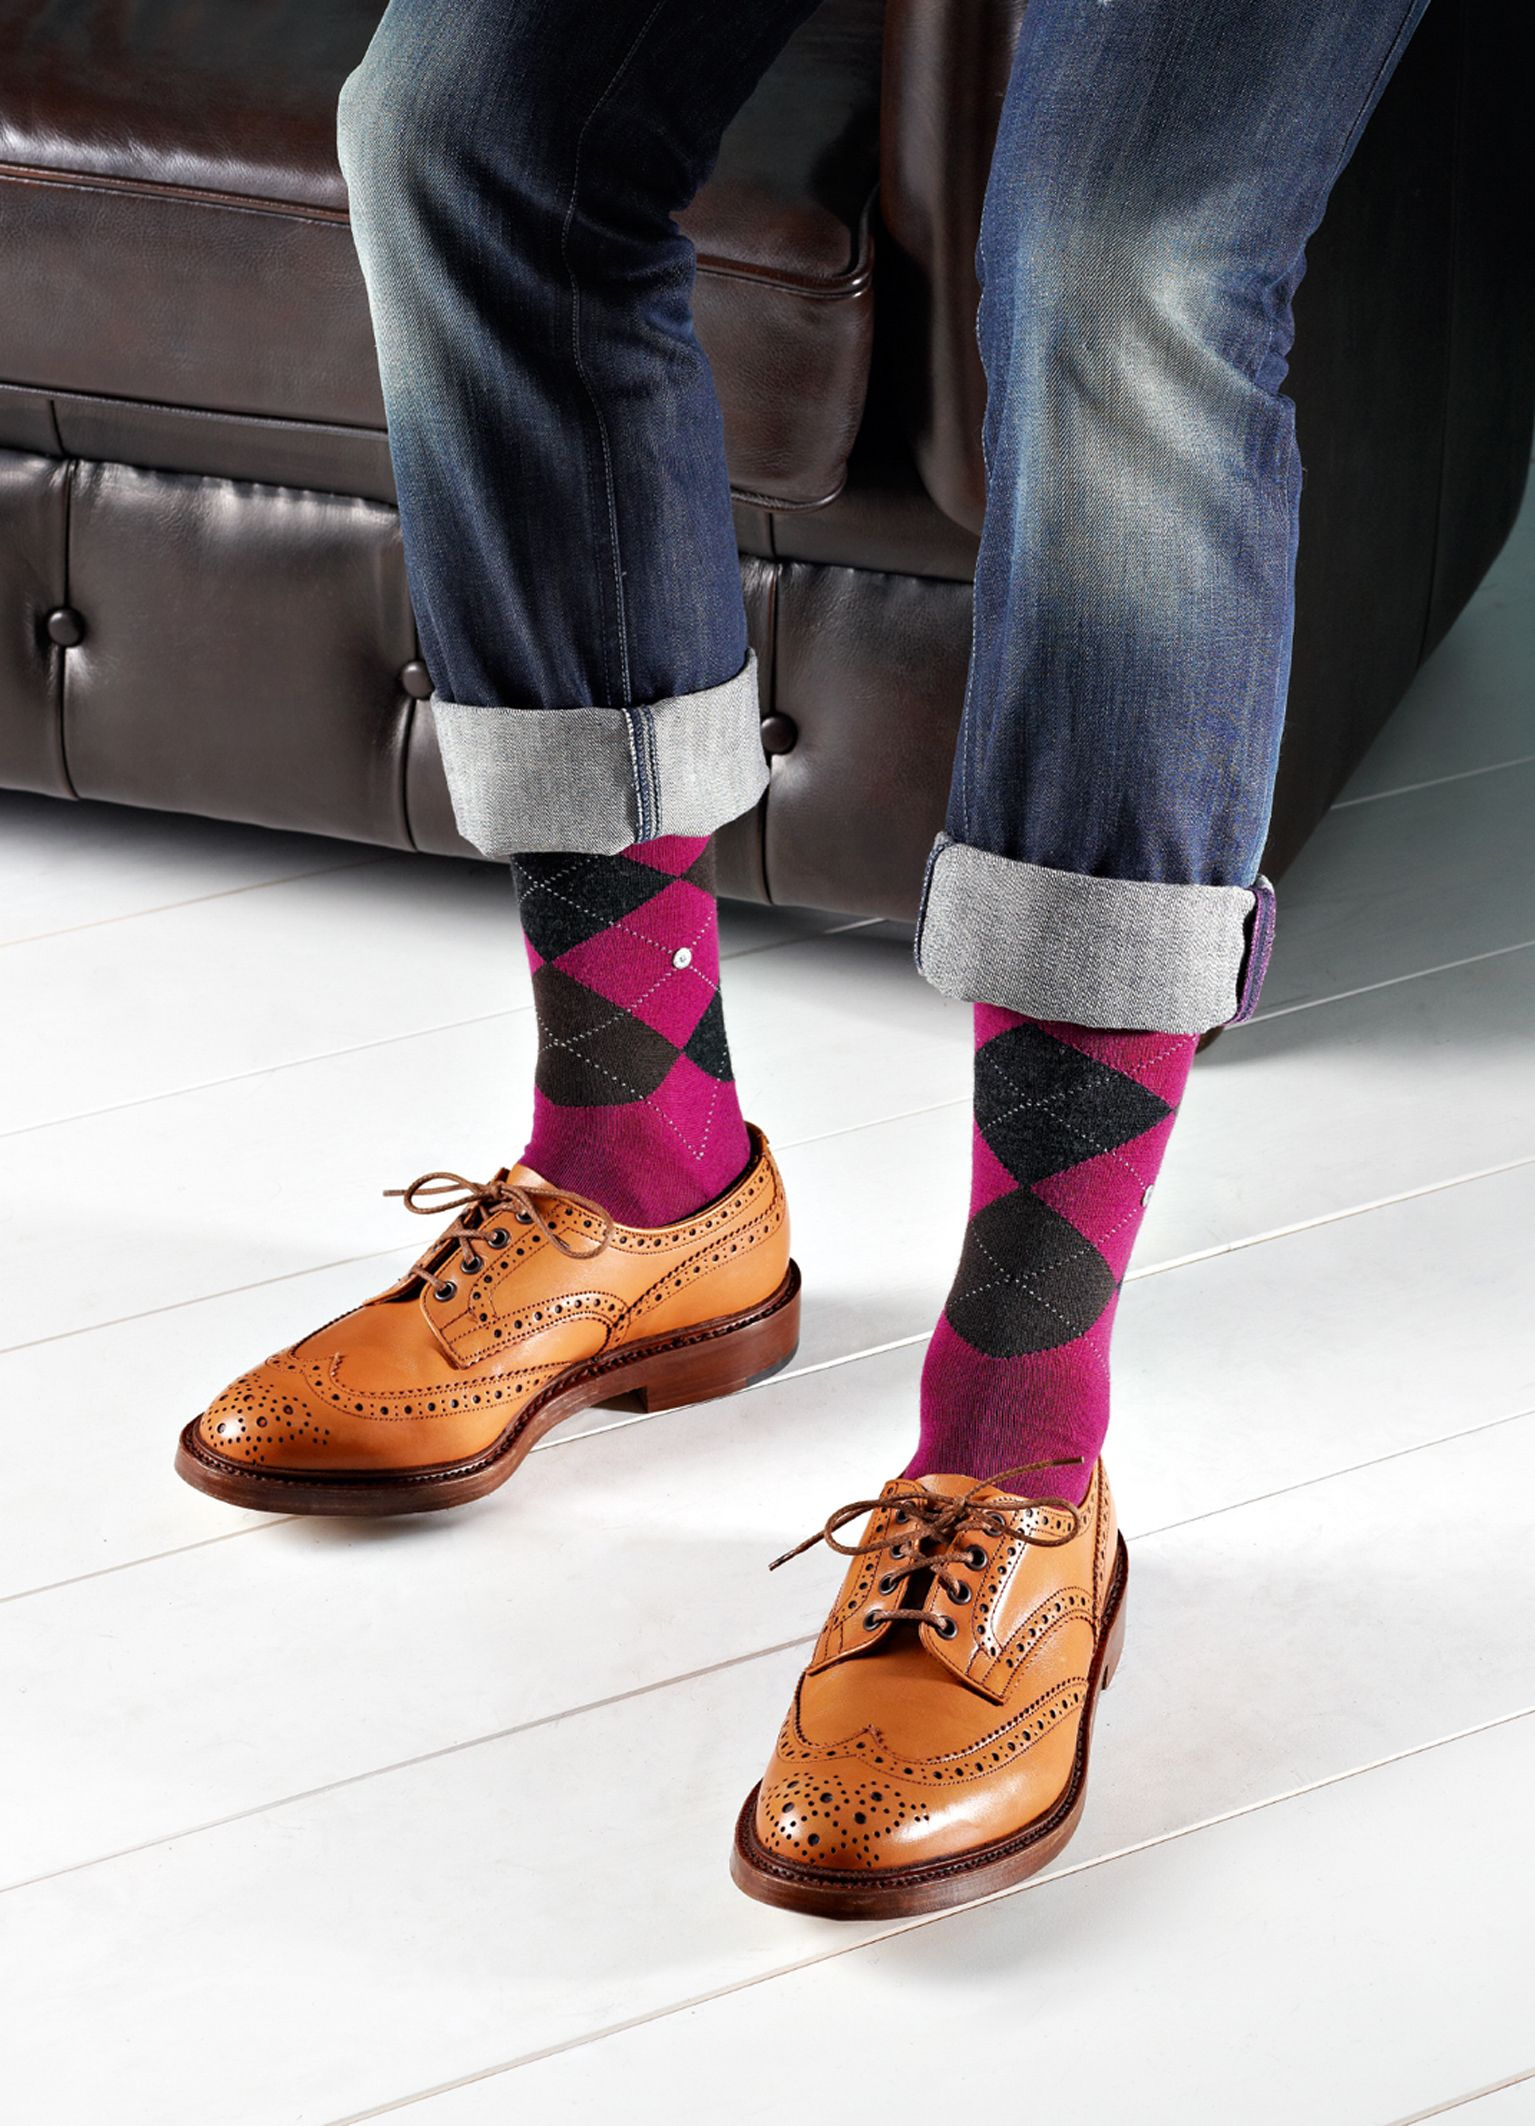 to wear - Dress Cool socks pictures video